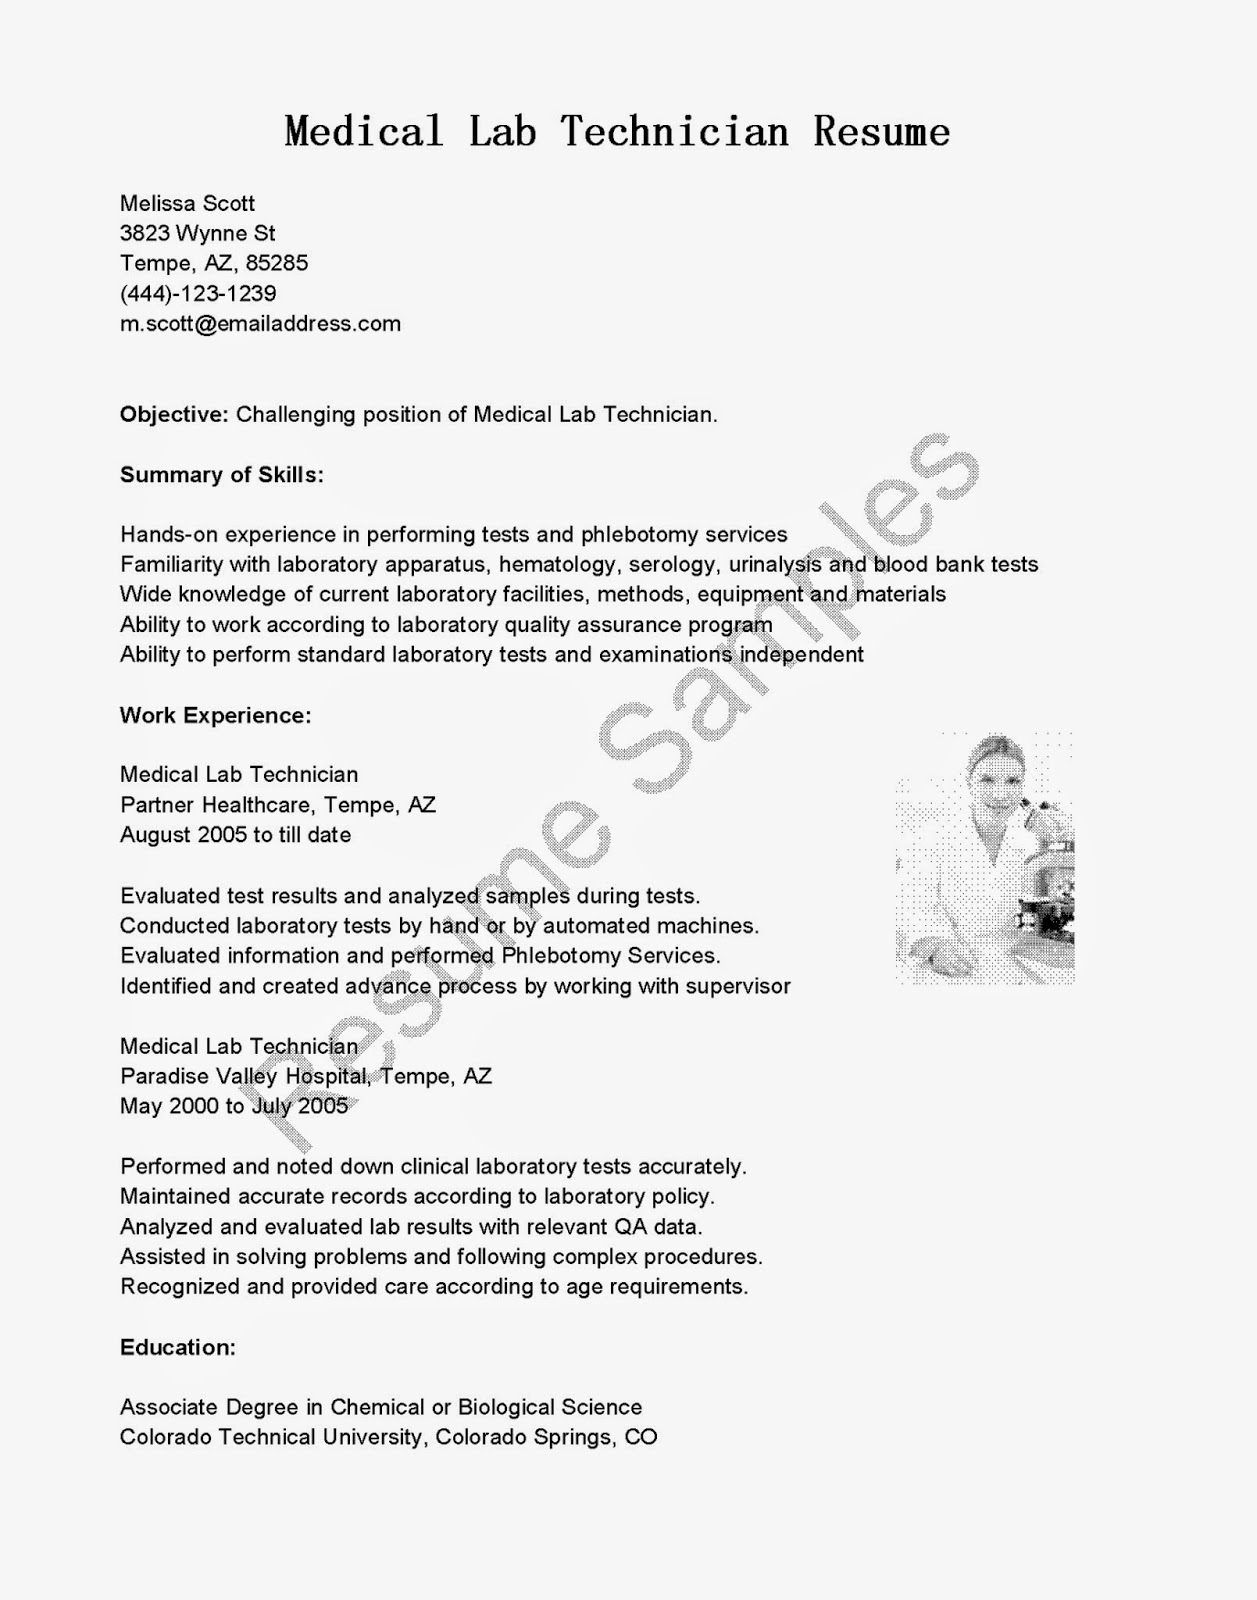 Dental Lab Technician Resume Acworldcup Tk Carpinteria Rural Friedrich  Medical Lab Technician Resume